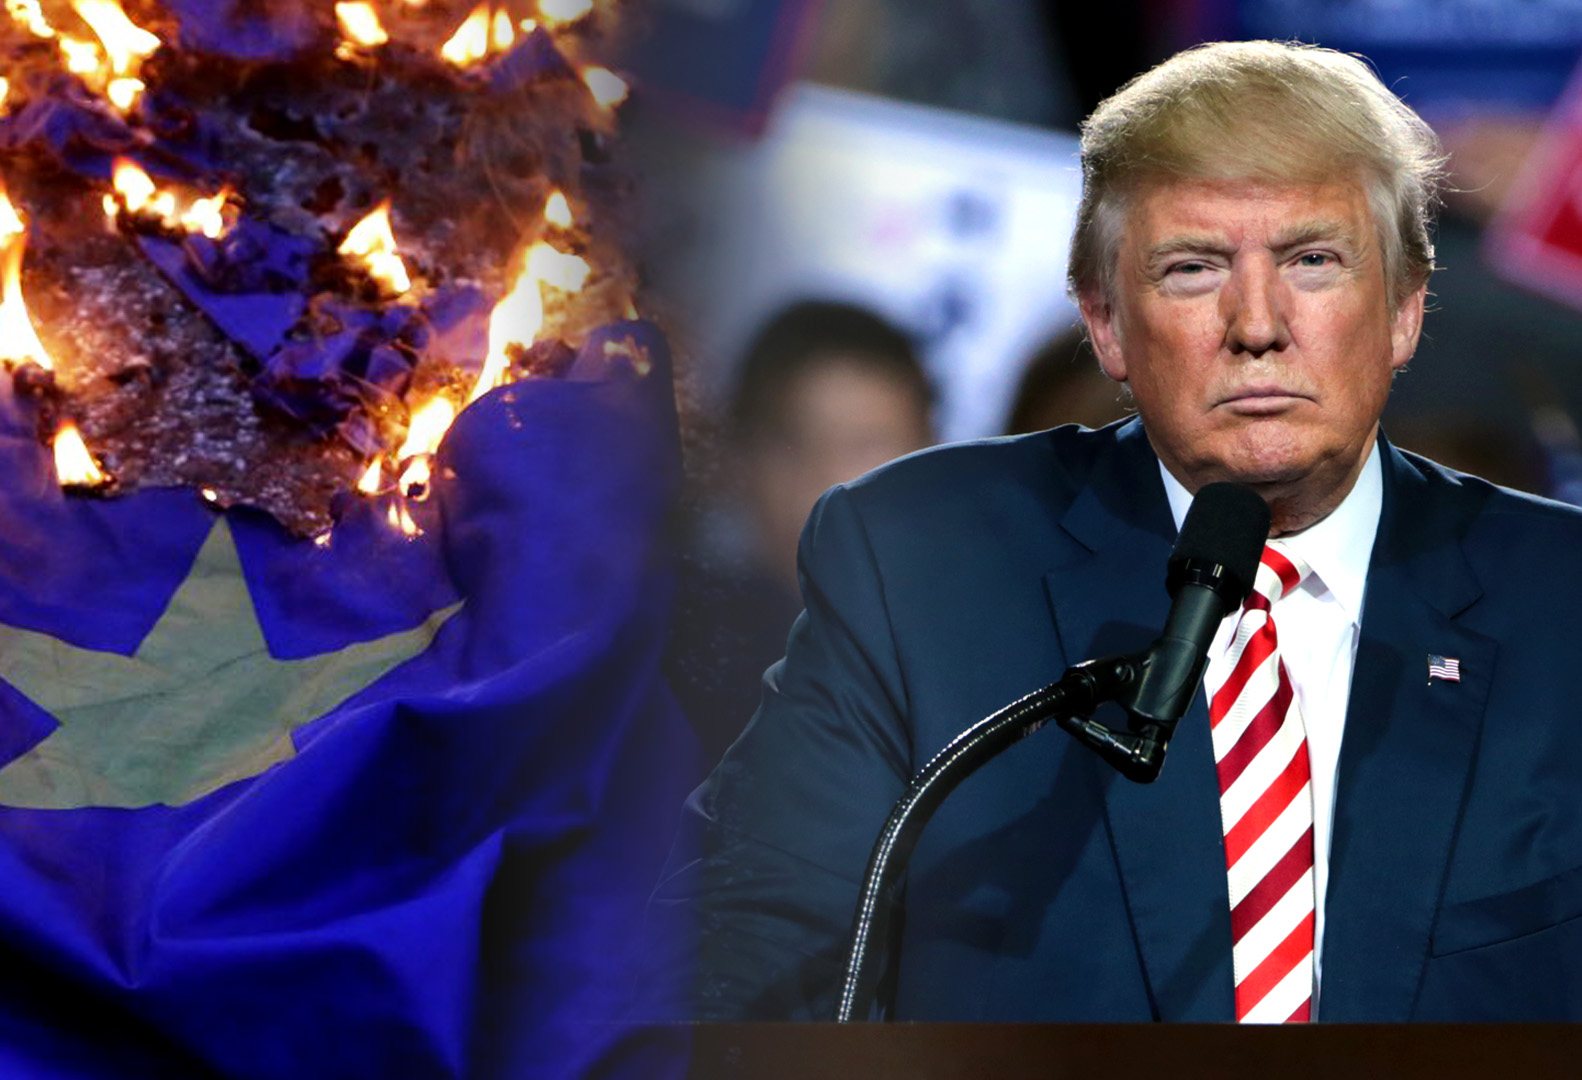 Brexit, Trump & The End of The World - Written by Ben Kinkaid · 28/03/2019Neo-liberalism is hanging on by a thread and the end of the world (as we know it) is upon us…